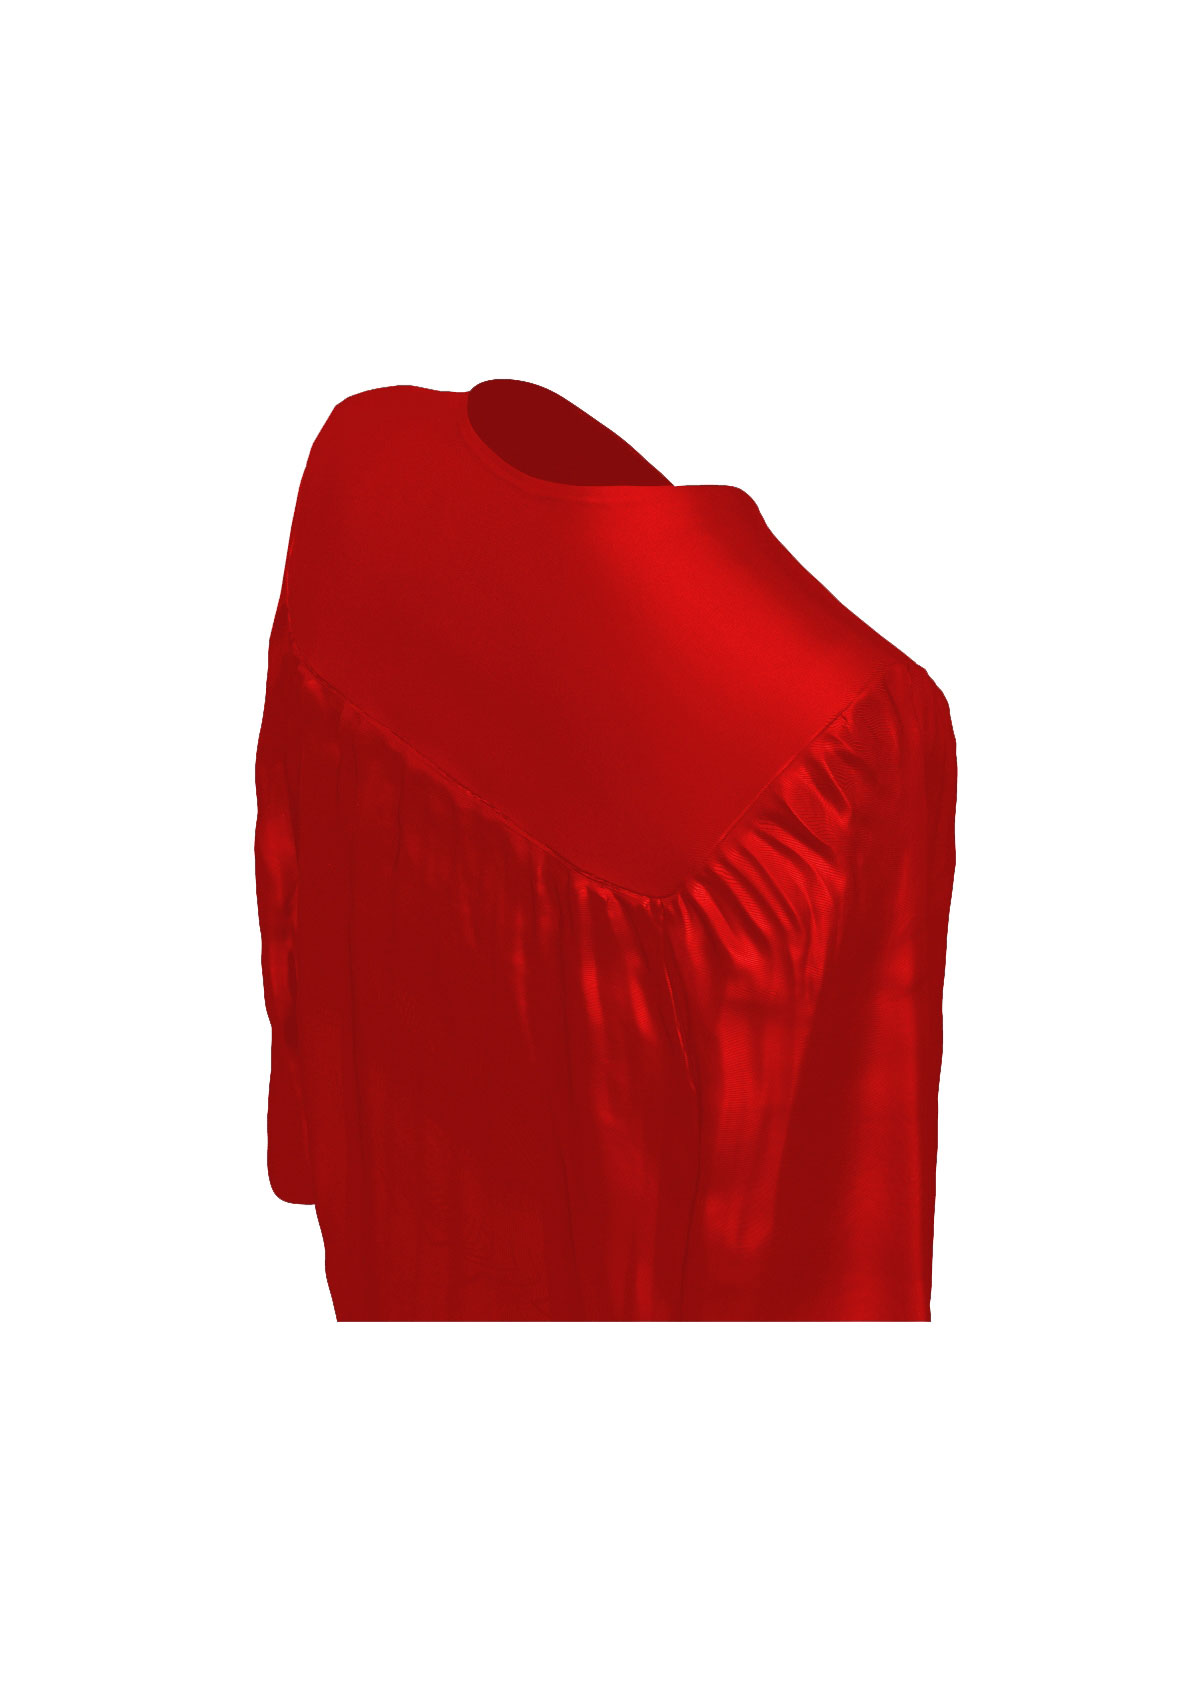 1178x1701 Shiny Red Cap Amp Gown Elementary School Graduation Set Rs4251465607860